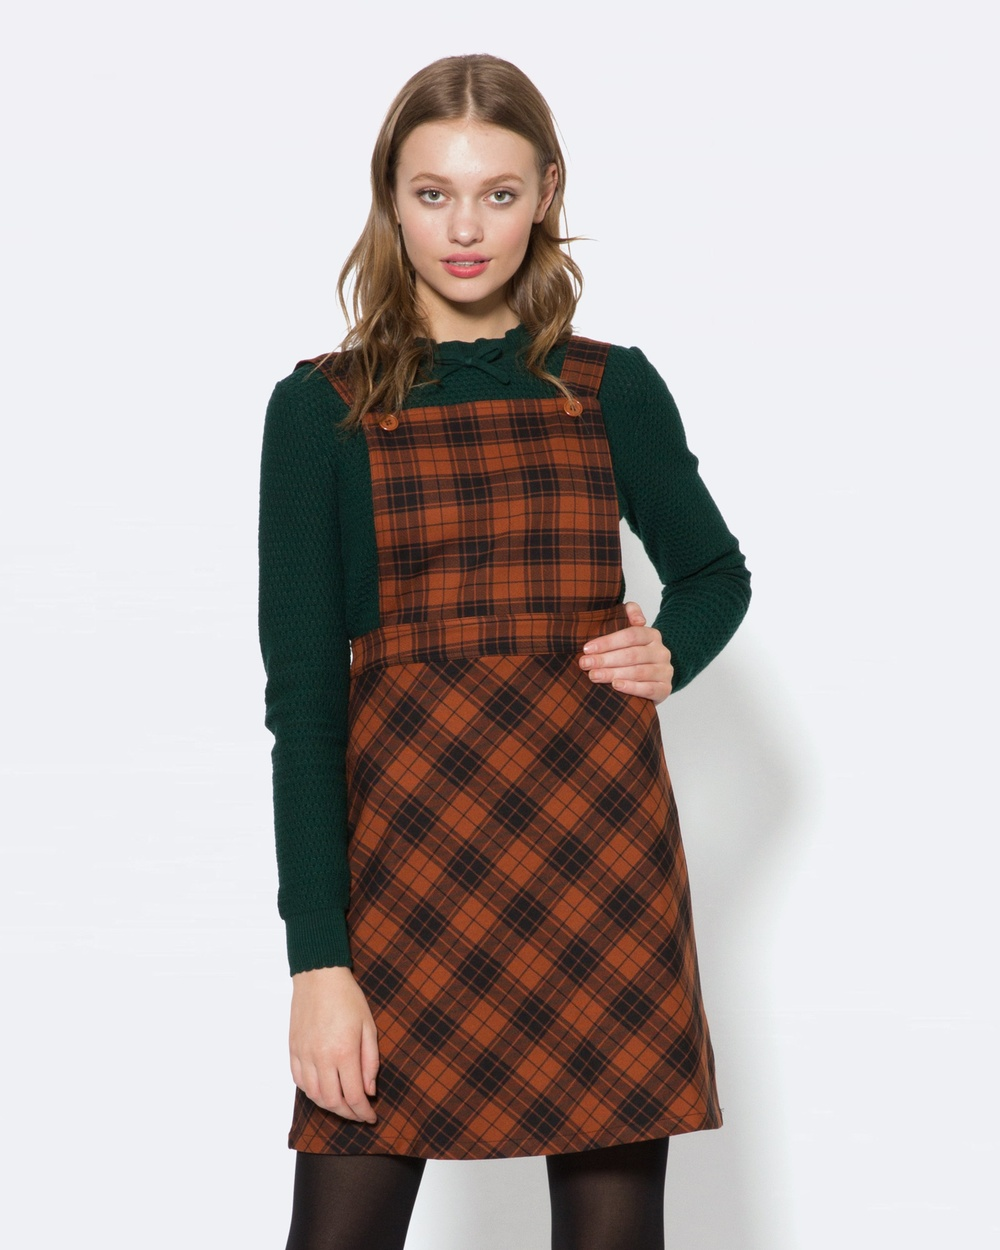 Princess Highway Tartan Pinny Dresses Orange Tartan Pinny